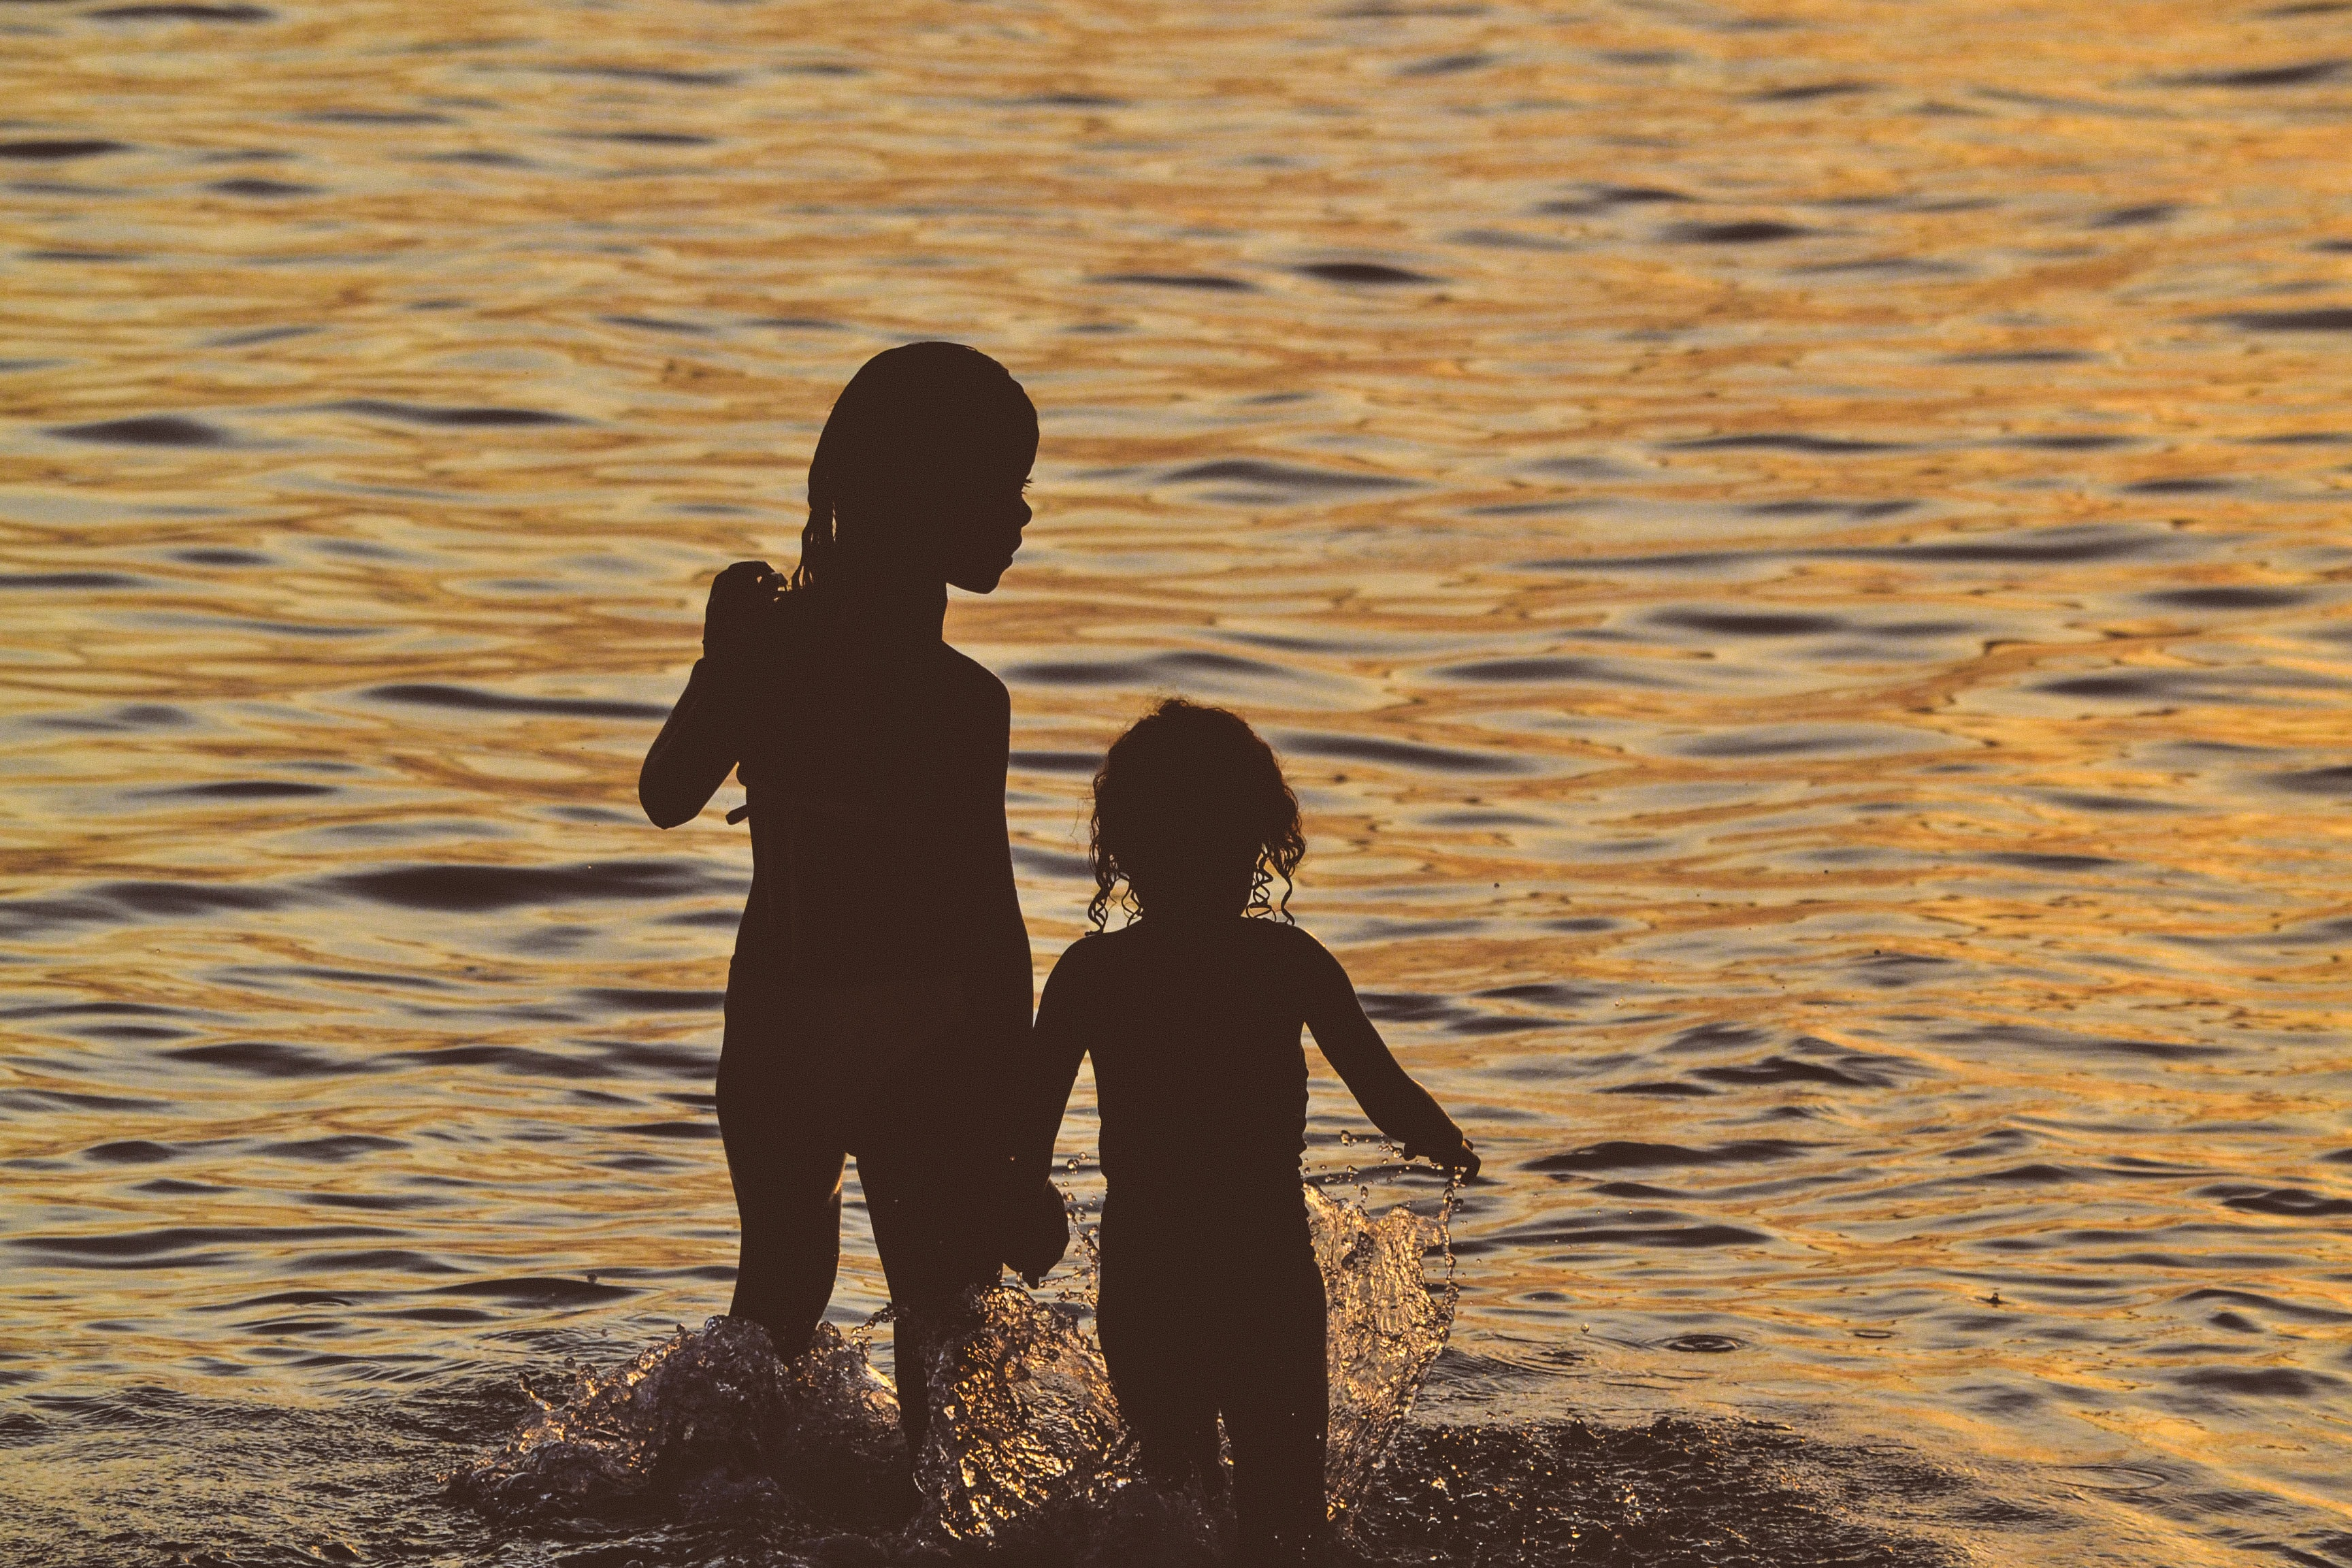 The silhouettes of two little kids splashing in the water at sunset